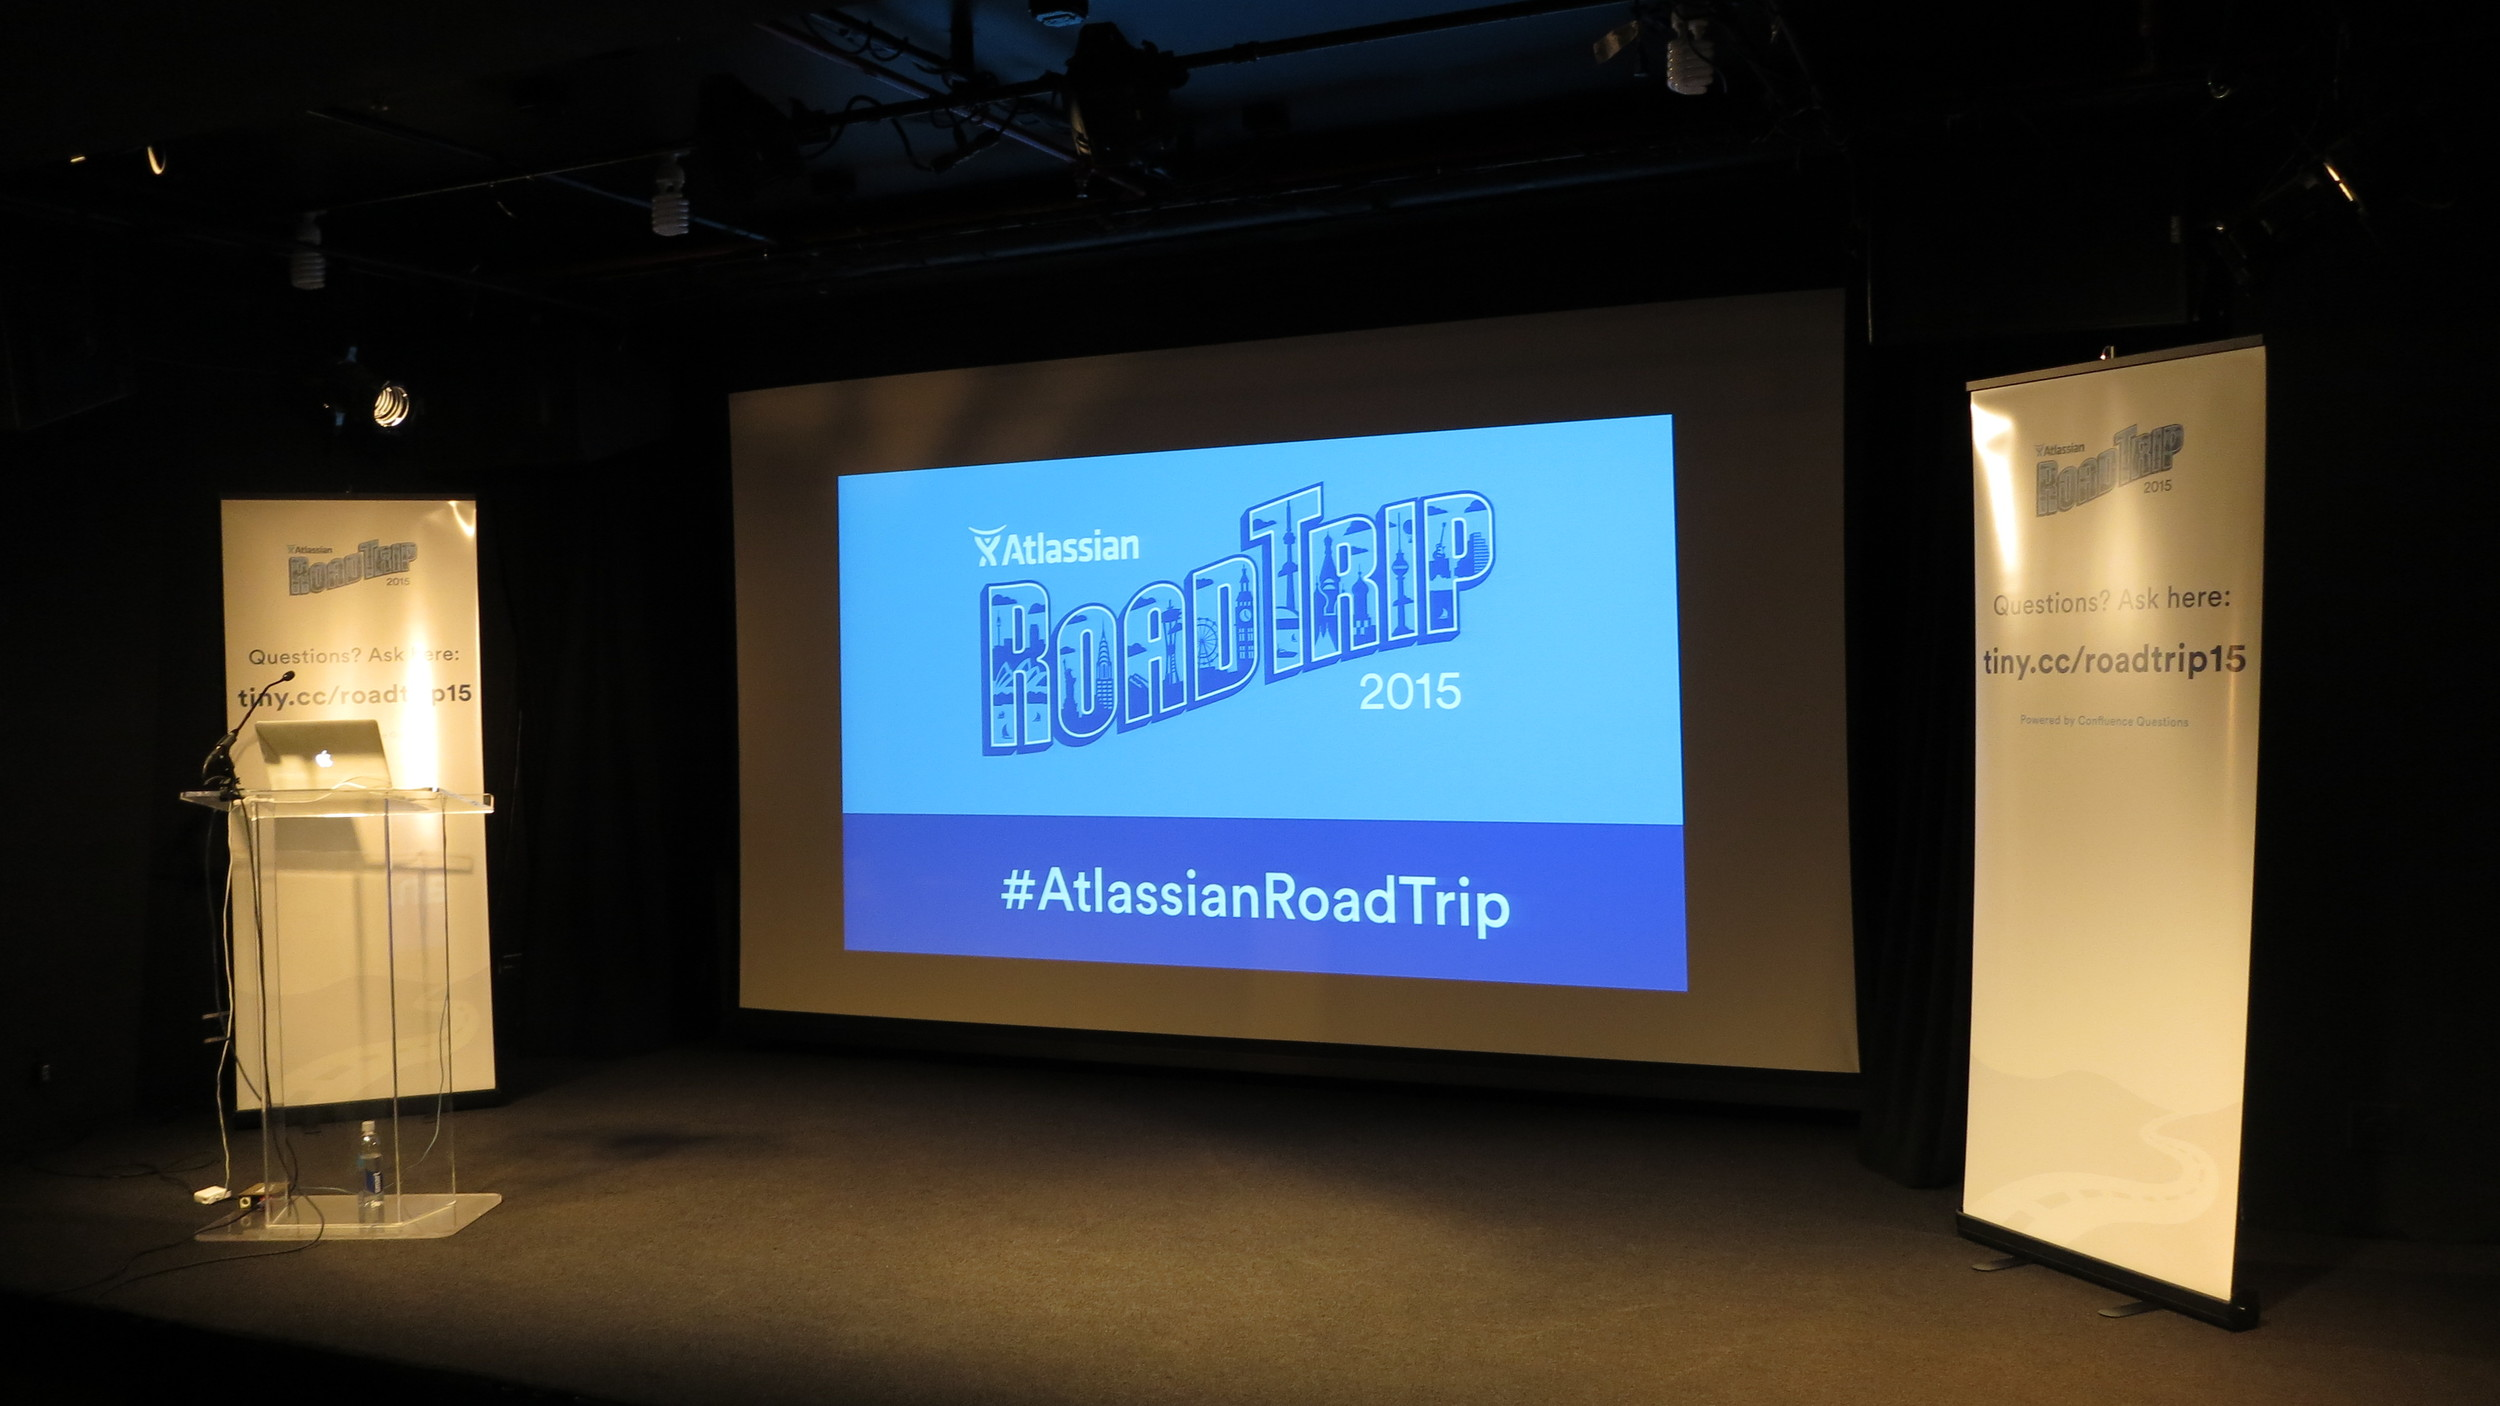 Atlassian 2015 Road Trip Presentation set-up